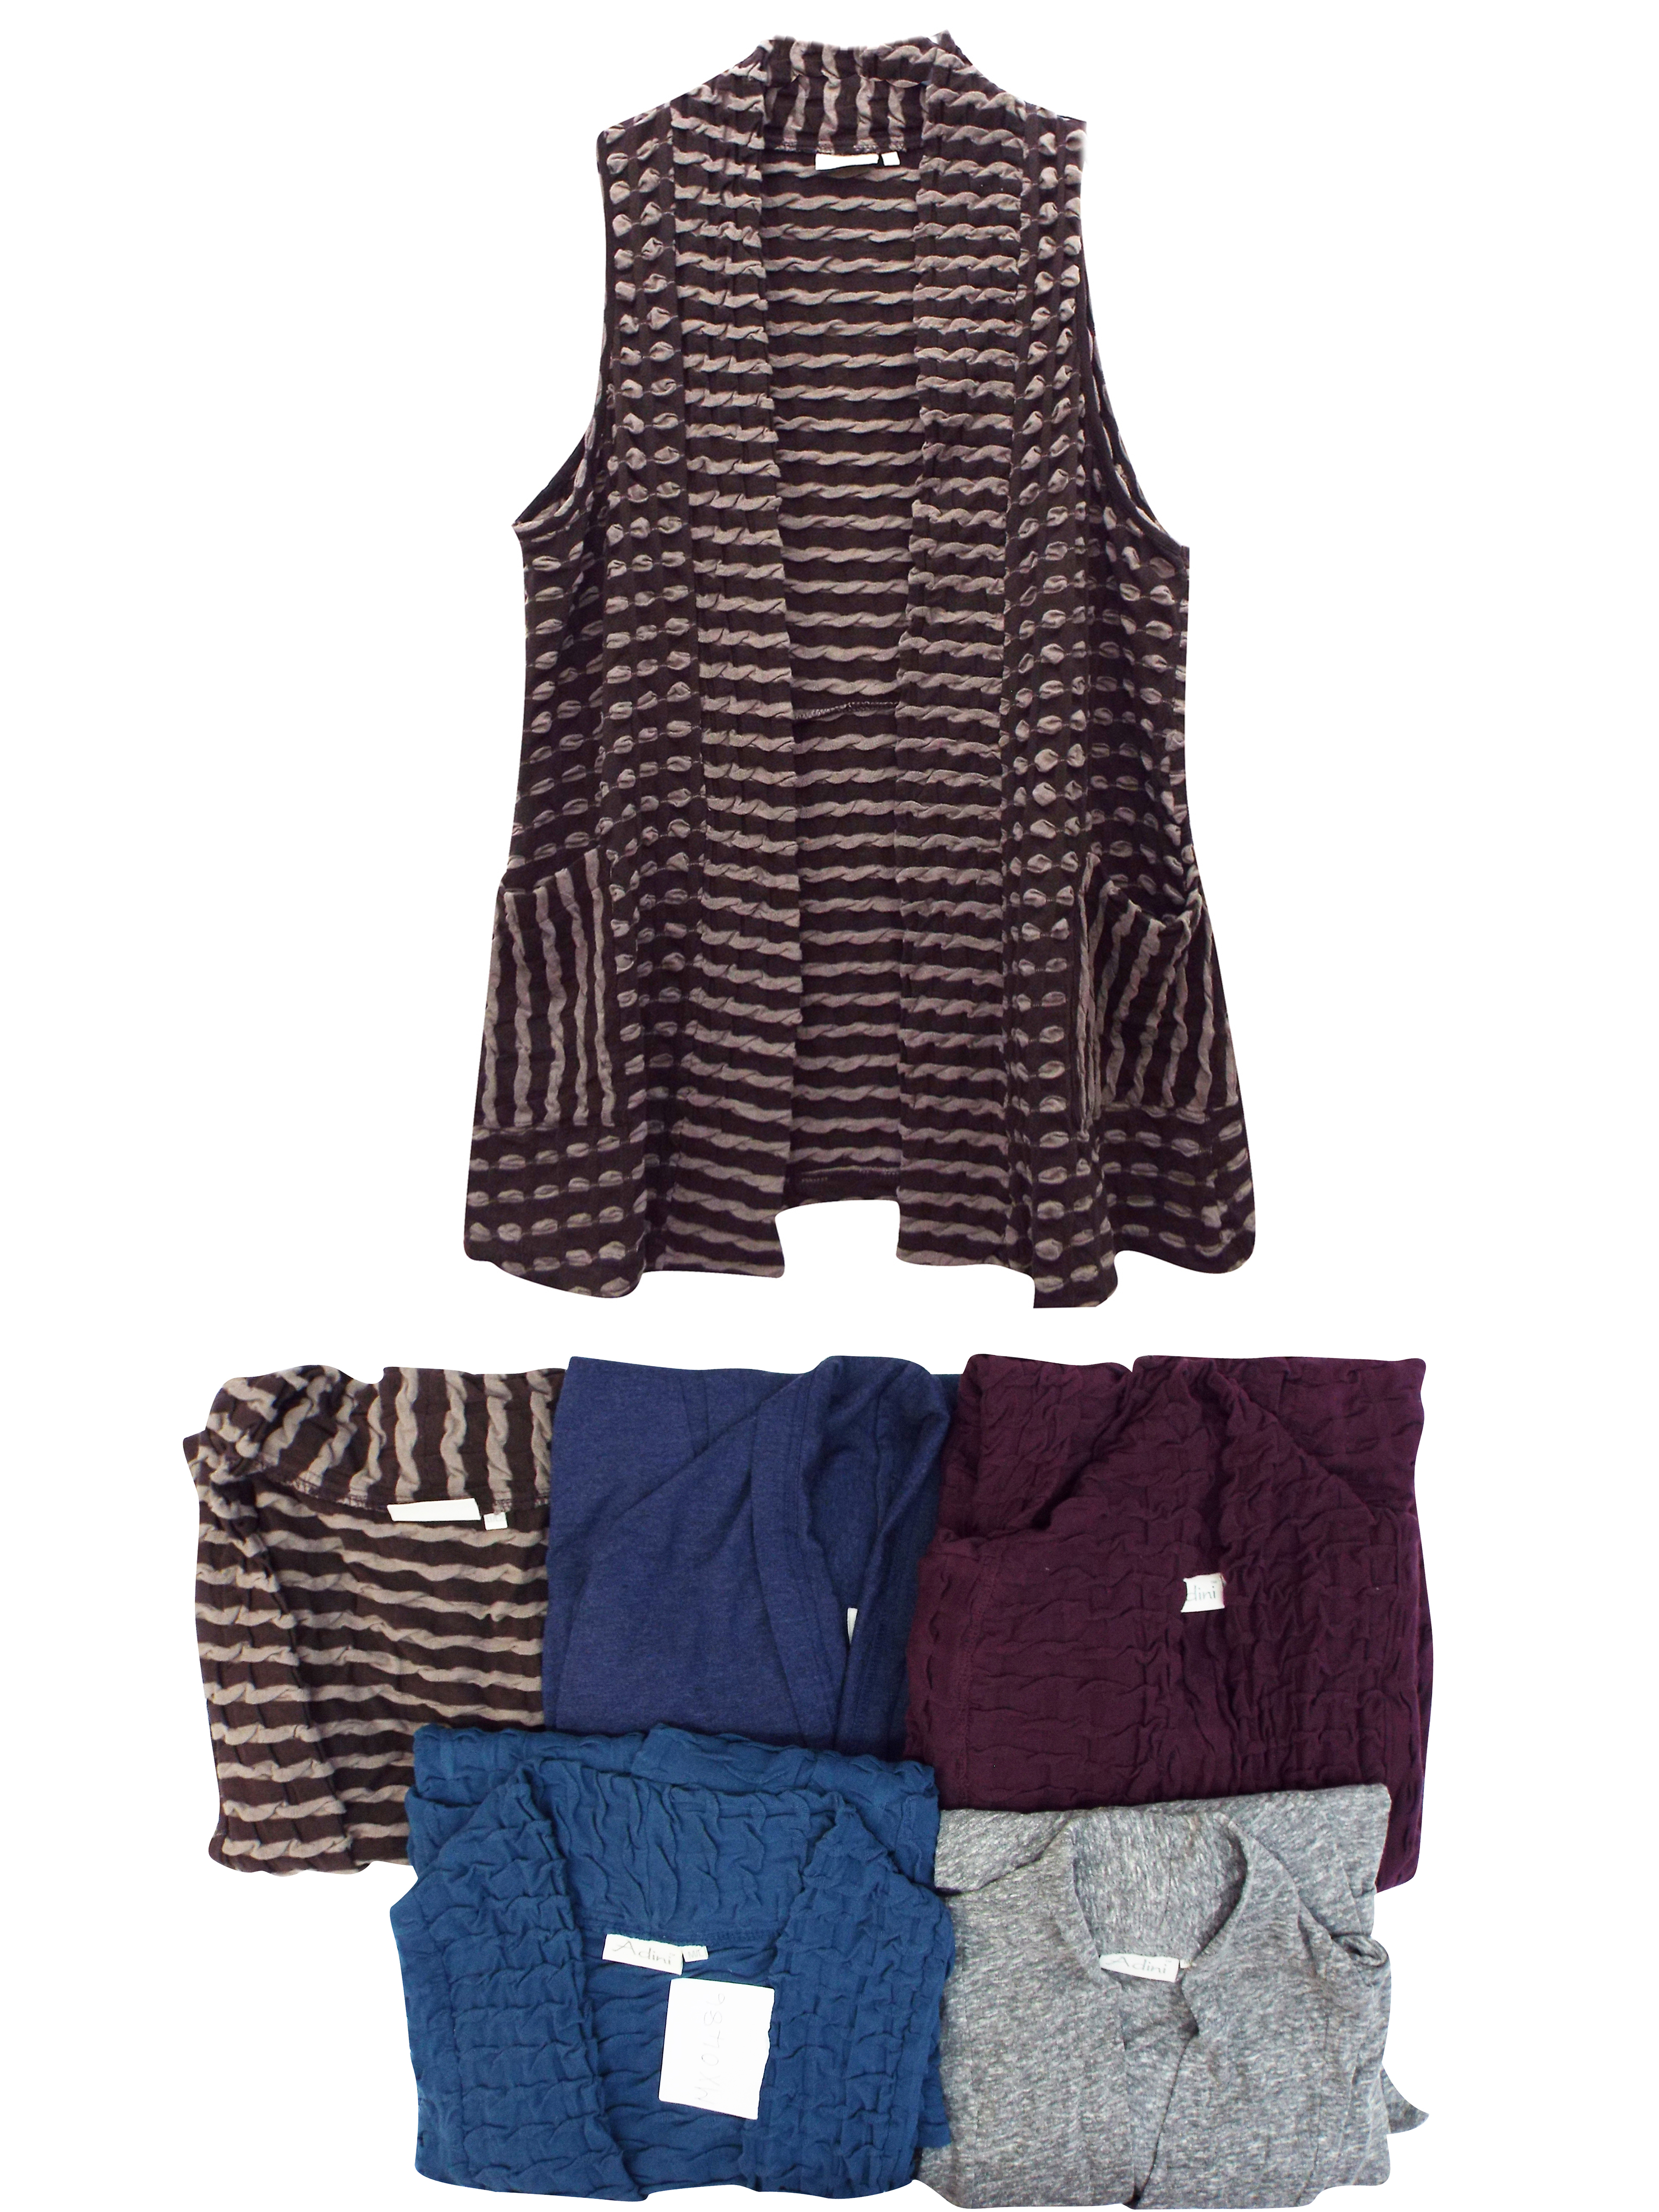 Adini ASSORTED Longline Cardigans - Plus Size 12/14 to 18/20